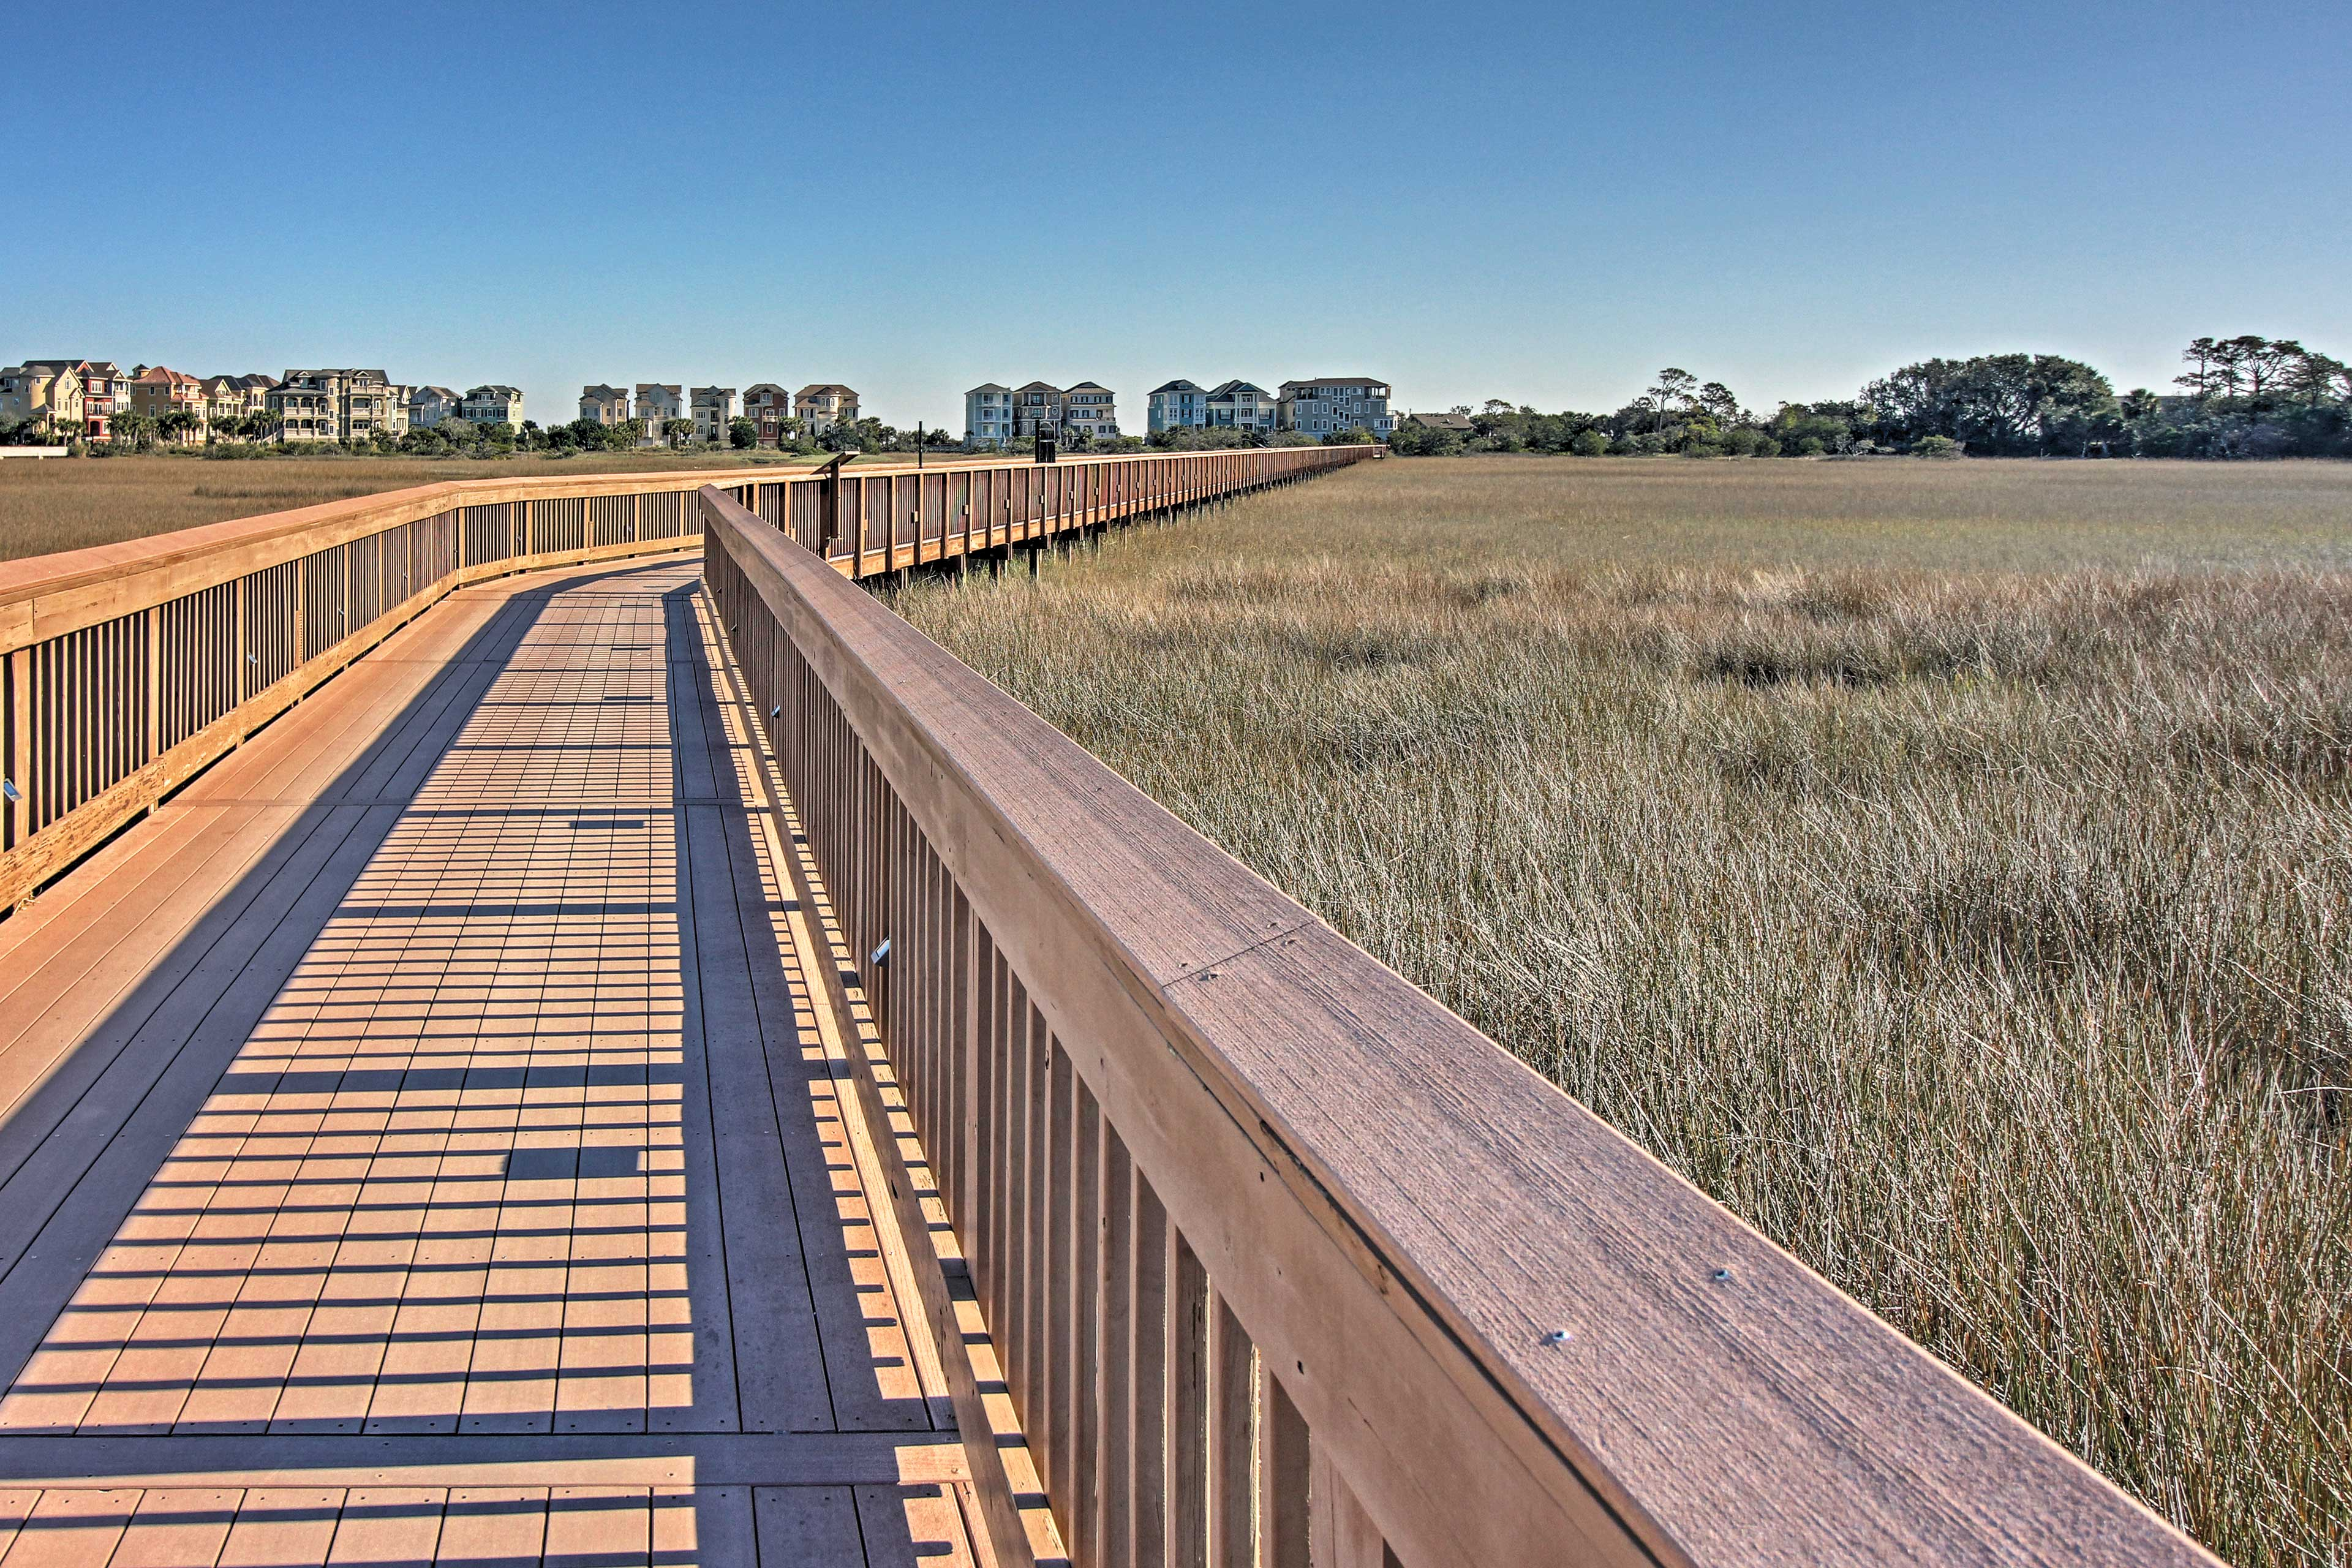 Stroll down the boardwalk or hop on the free golf cart shuttle to the beach!